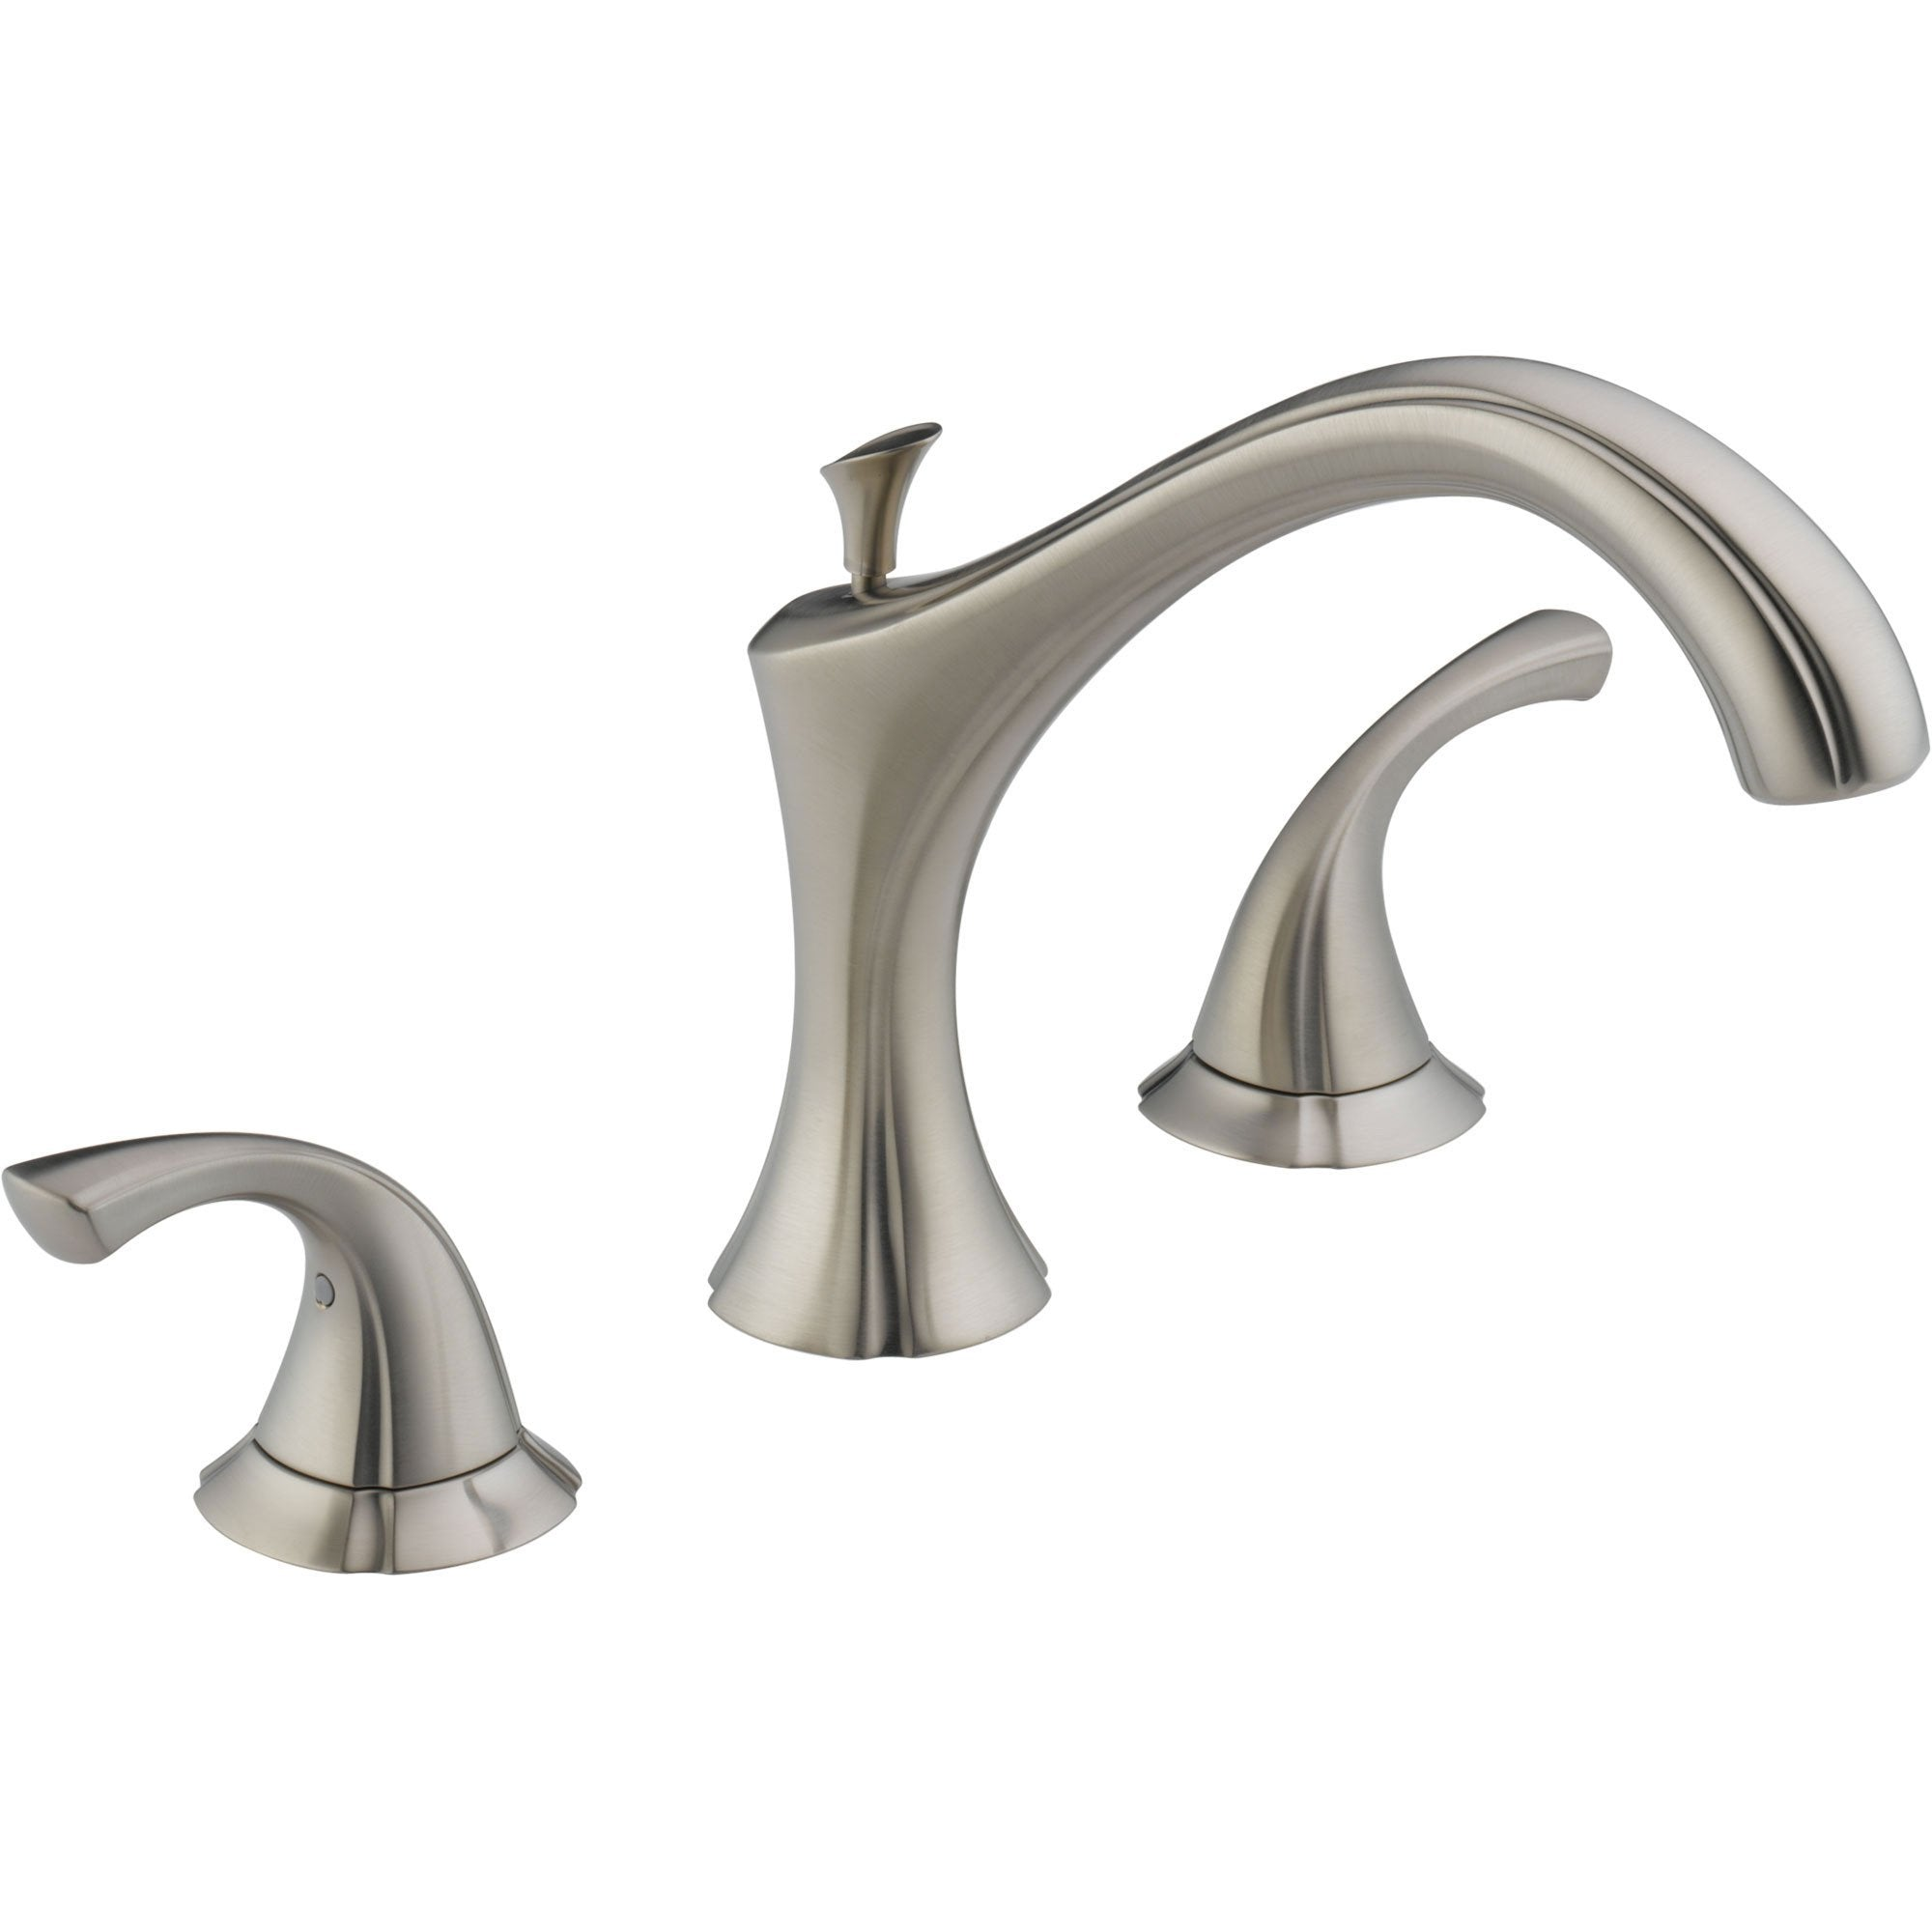 Delta Addison Widespread Stainless Steel Finish Roman Tub Faucet w/ Valve D922V